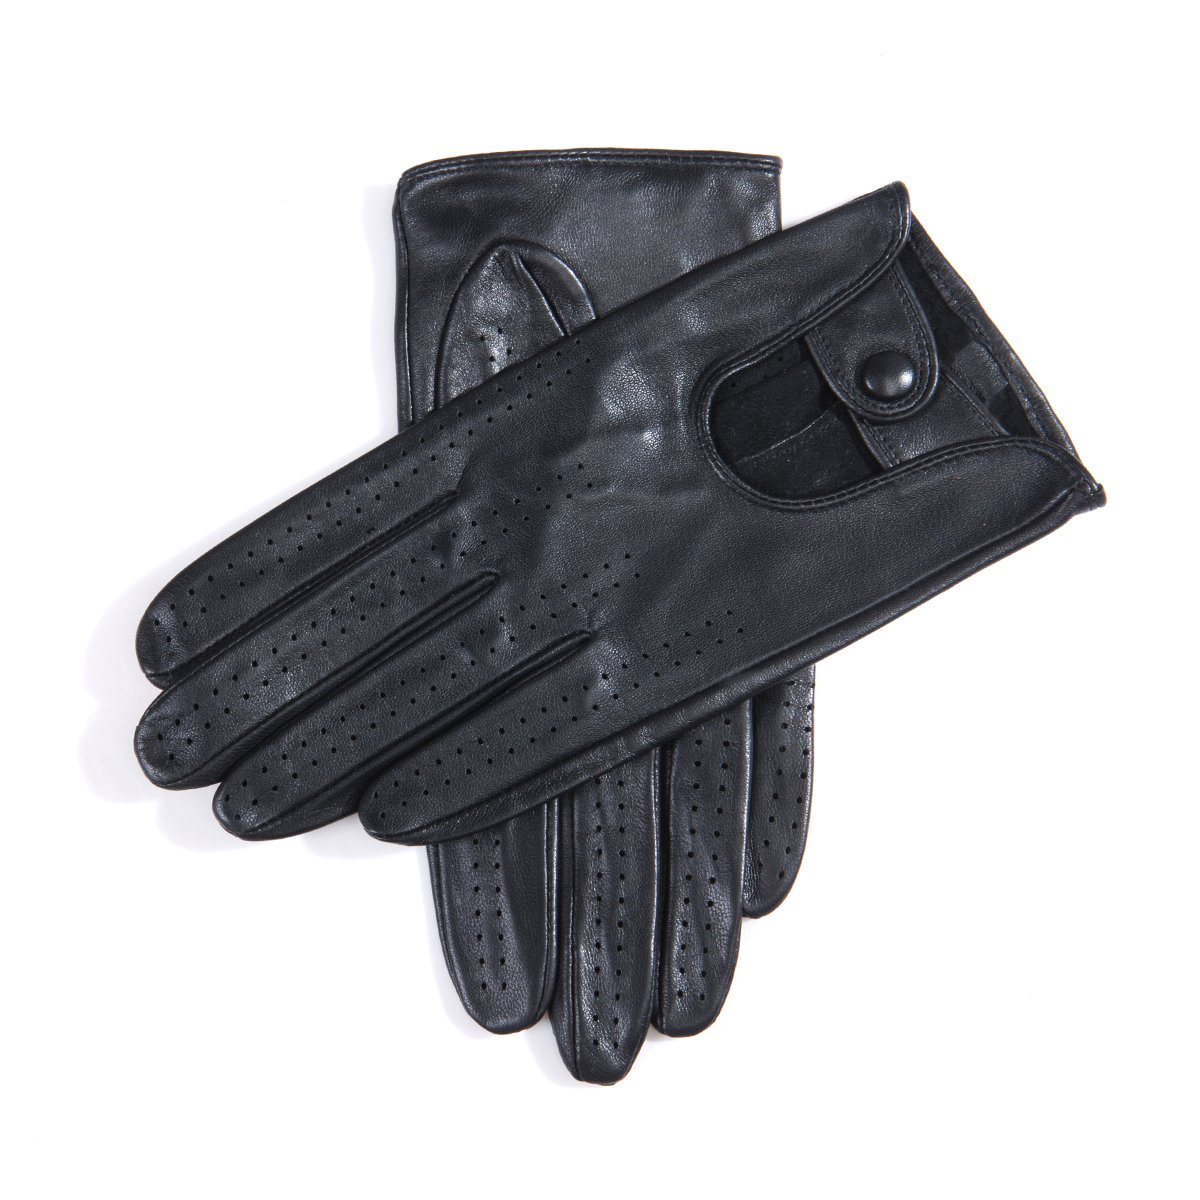 MATSU Classic Women Driving Touchscreen Lambskin Leather Gloves Available for Rivets DIY #9237 (XL, Black) by Matsu Gloves (Image #2)